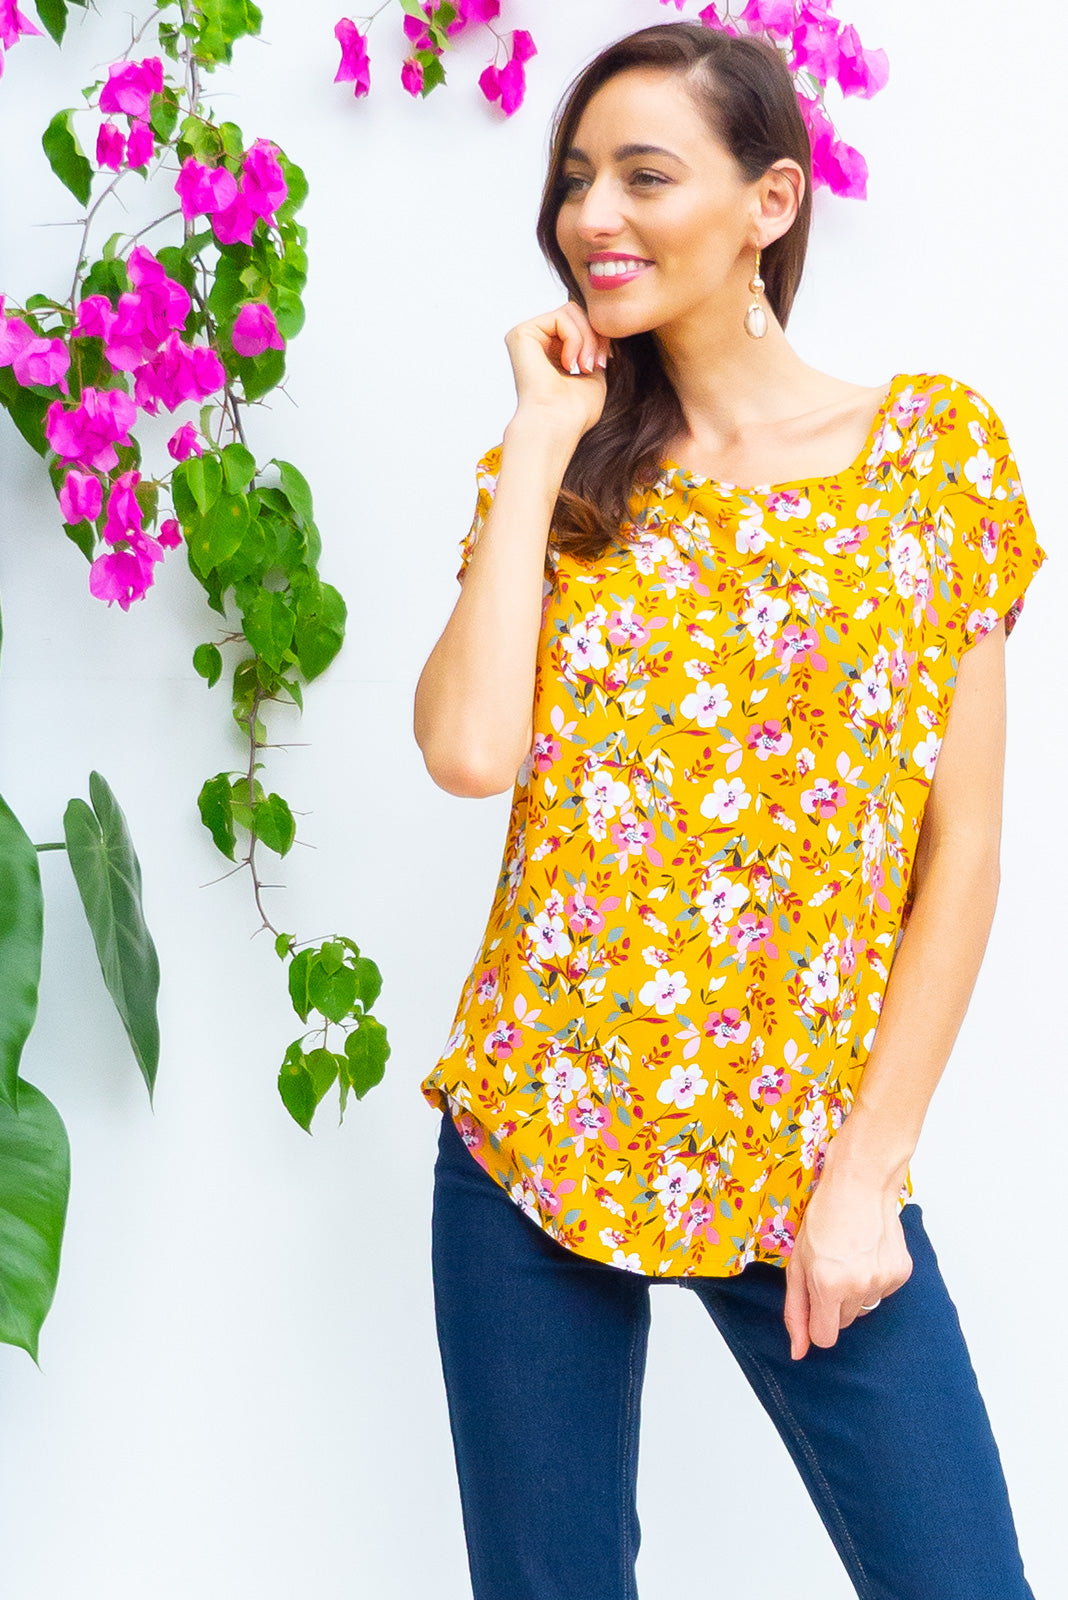 Sugar High Starburst rayon relaxed fit longline boho top in a warm golden yellow and multicoloured floral print